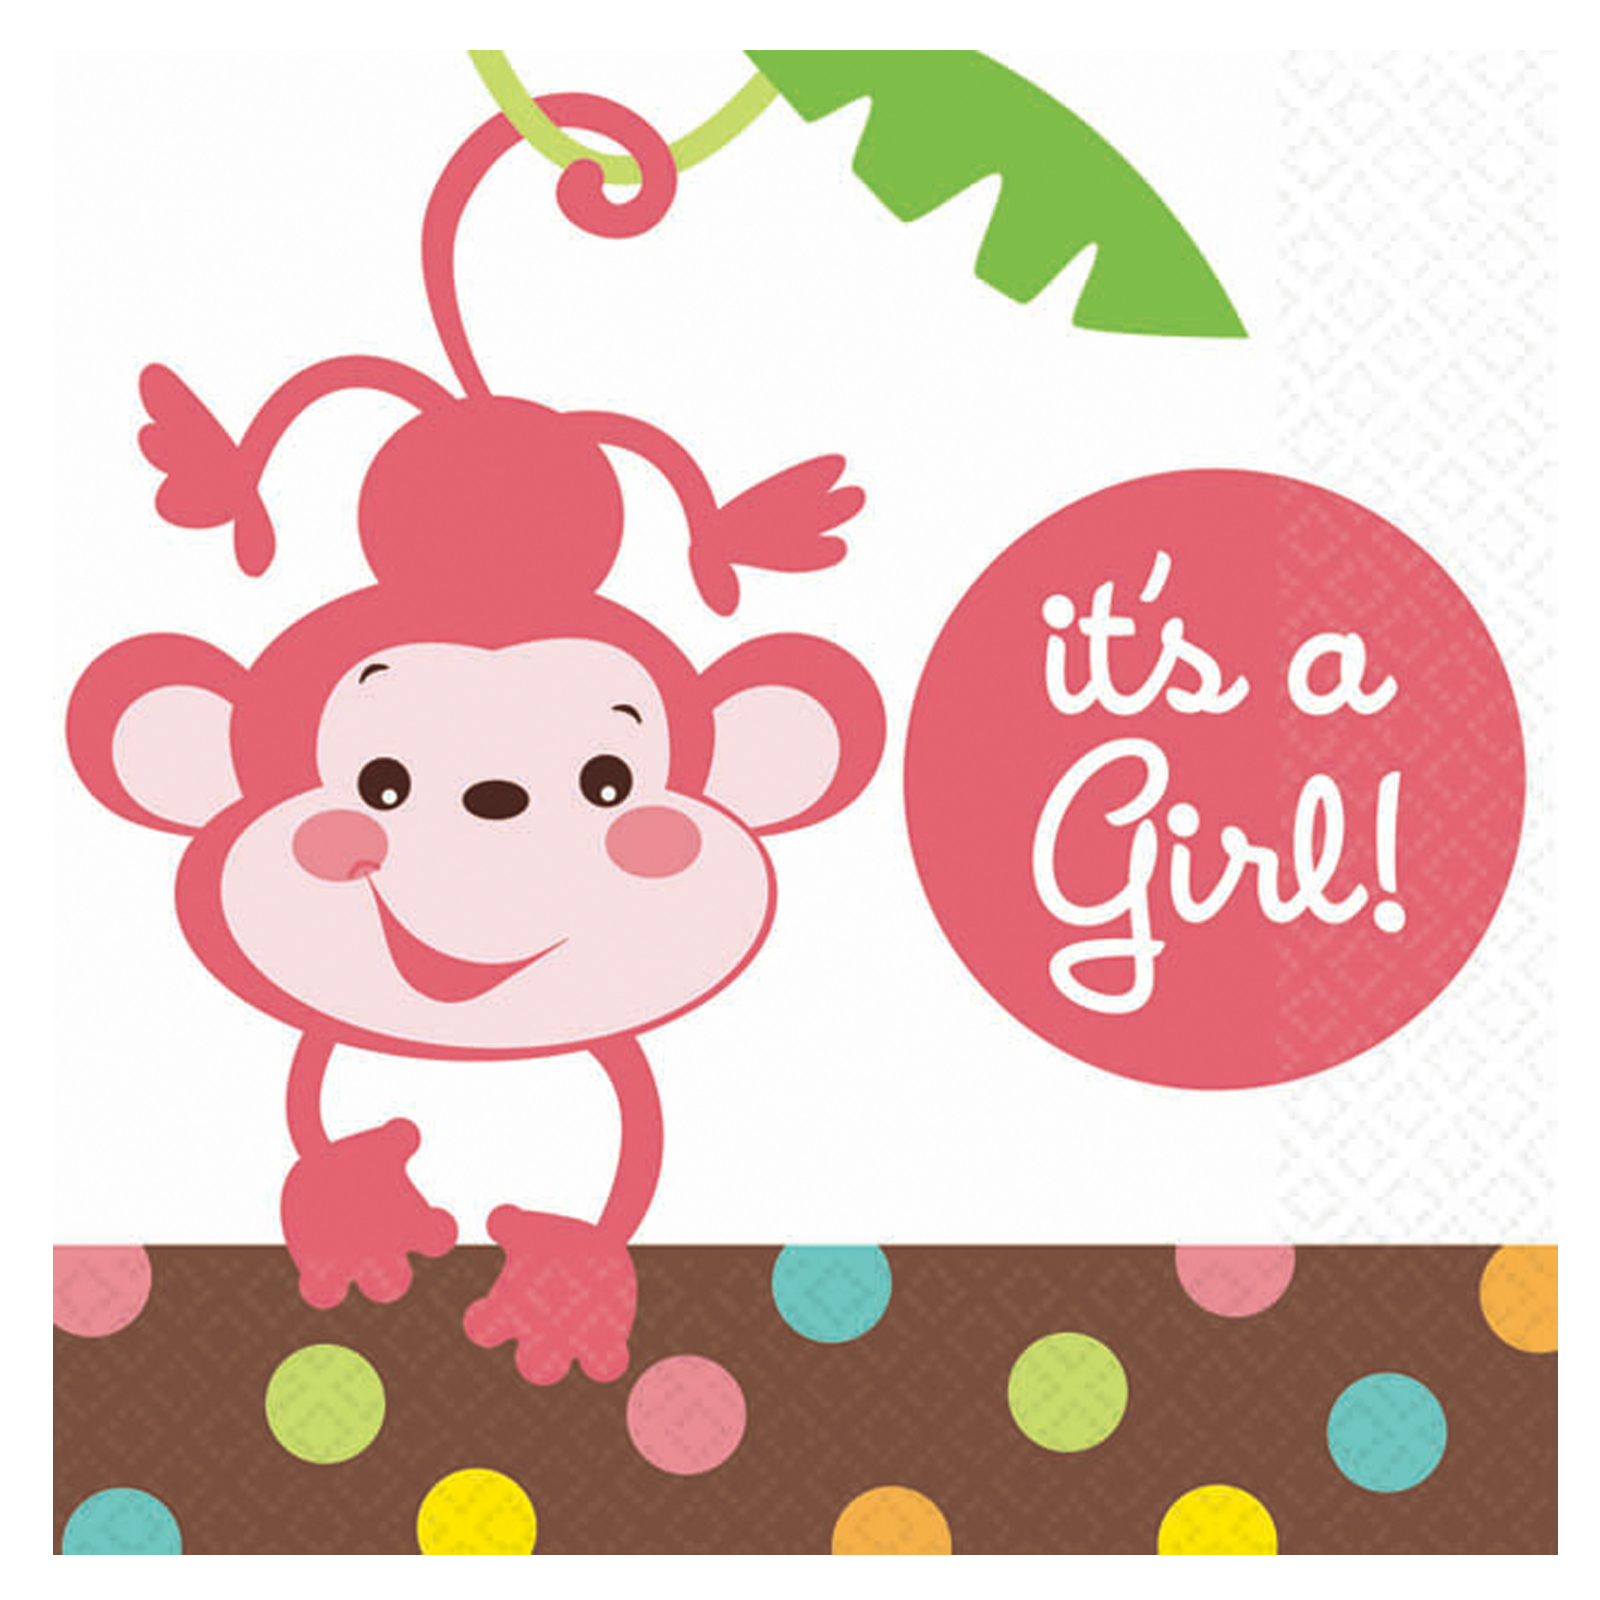 For babies amscan 200402 fisher price baby shower its a girl for babies amscan 200402 fisher price baby shower its a girl beverage napkins offers filmwisefo